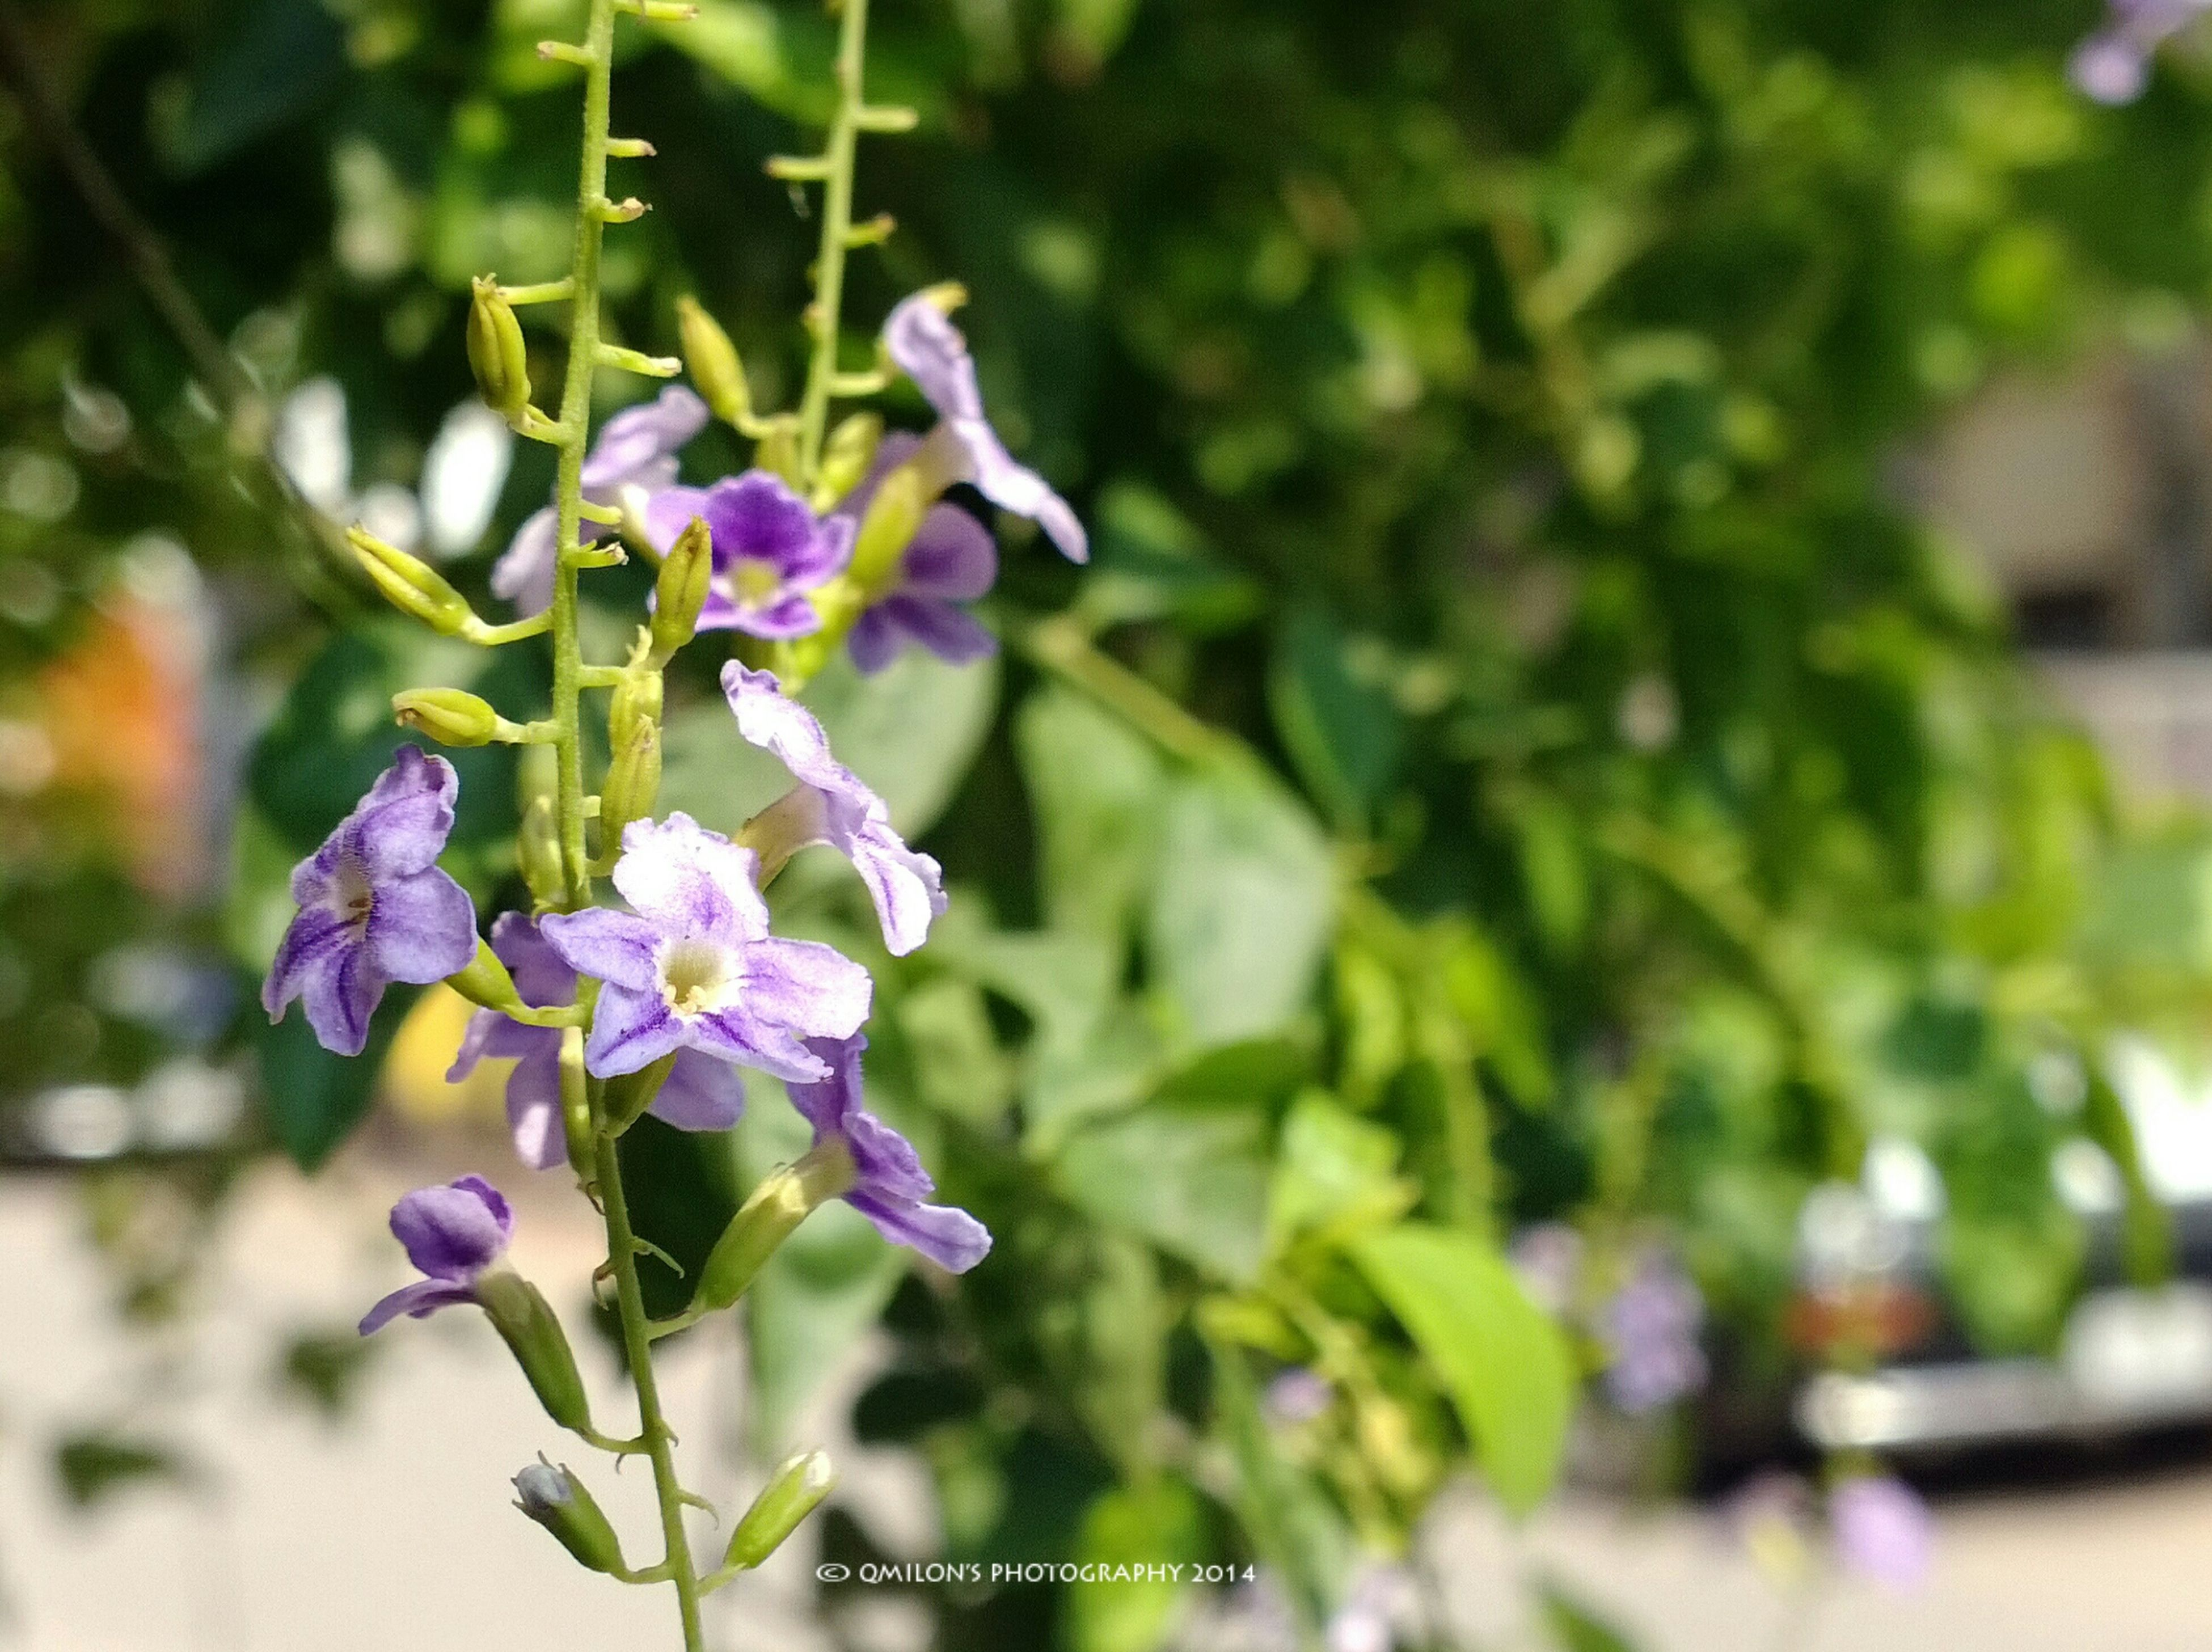 flower, freshness, fragility, growth, purple, focus on foreground, petal, plant, close-up, beauty in nature, blooming, flower head, stem, nature, in bloom, blossom, selective focus, outdoors, bud, day